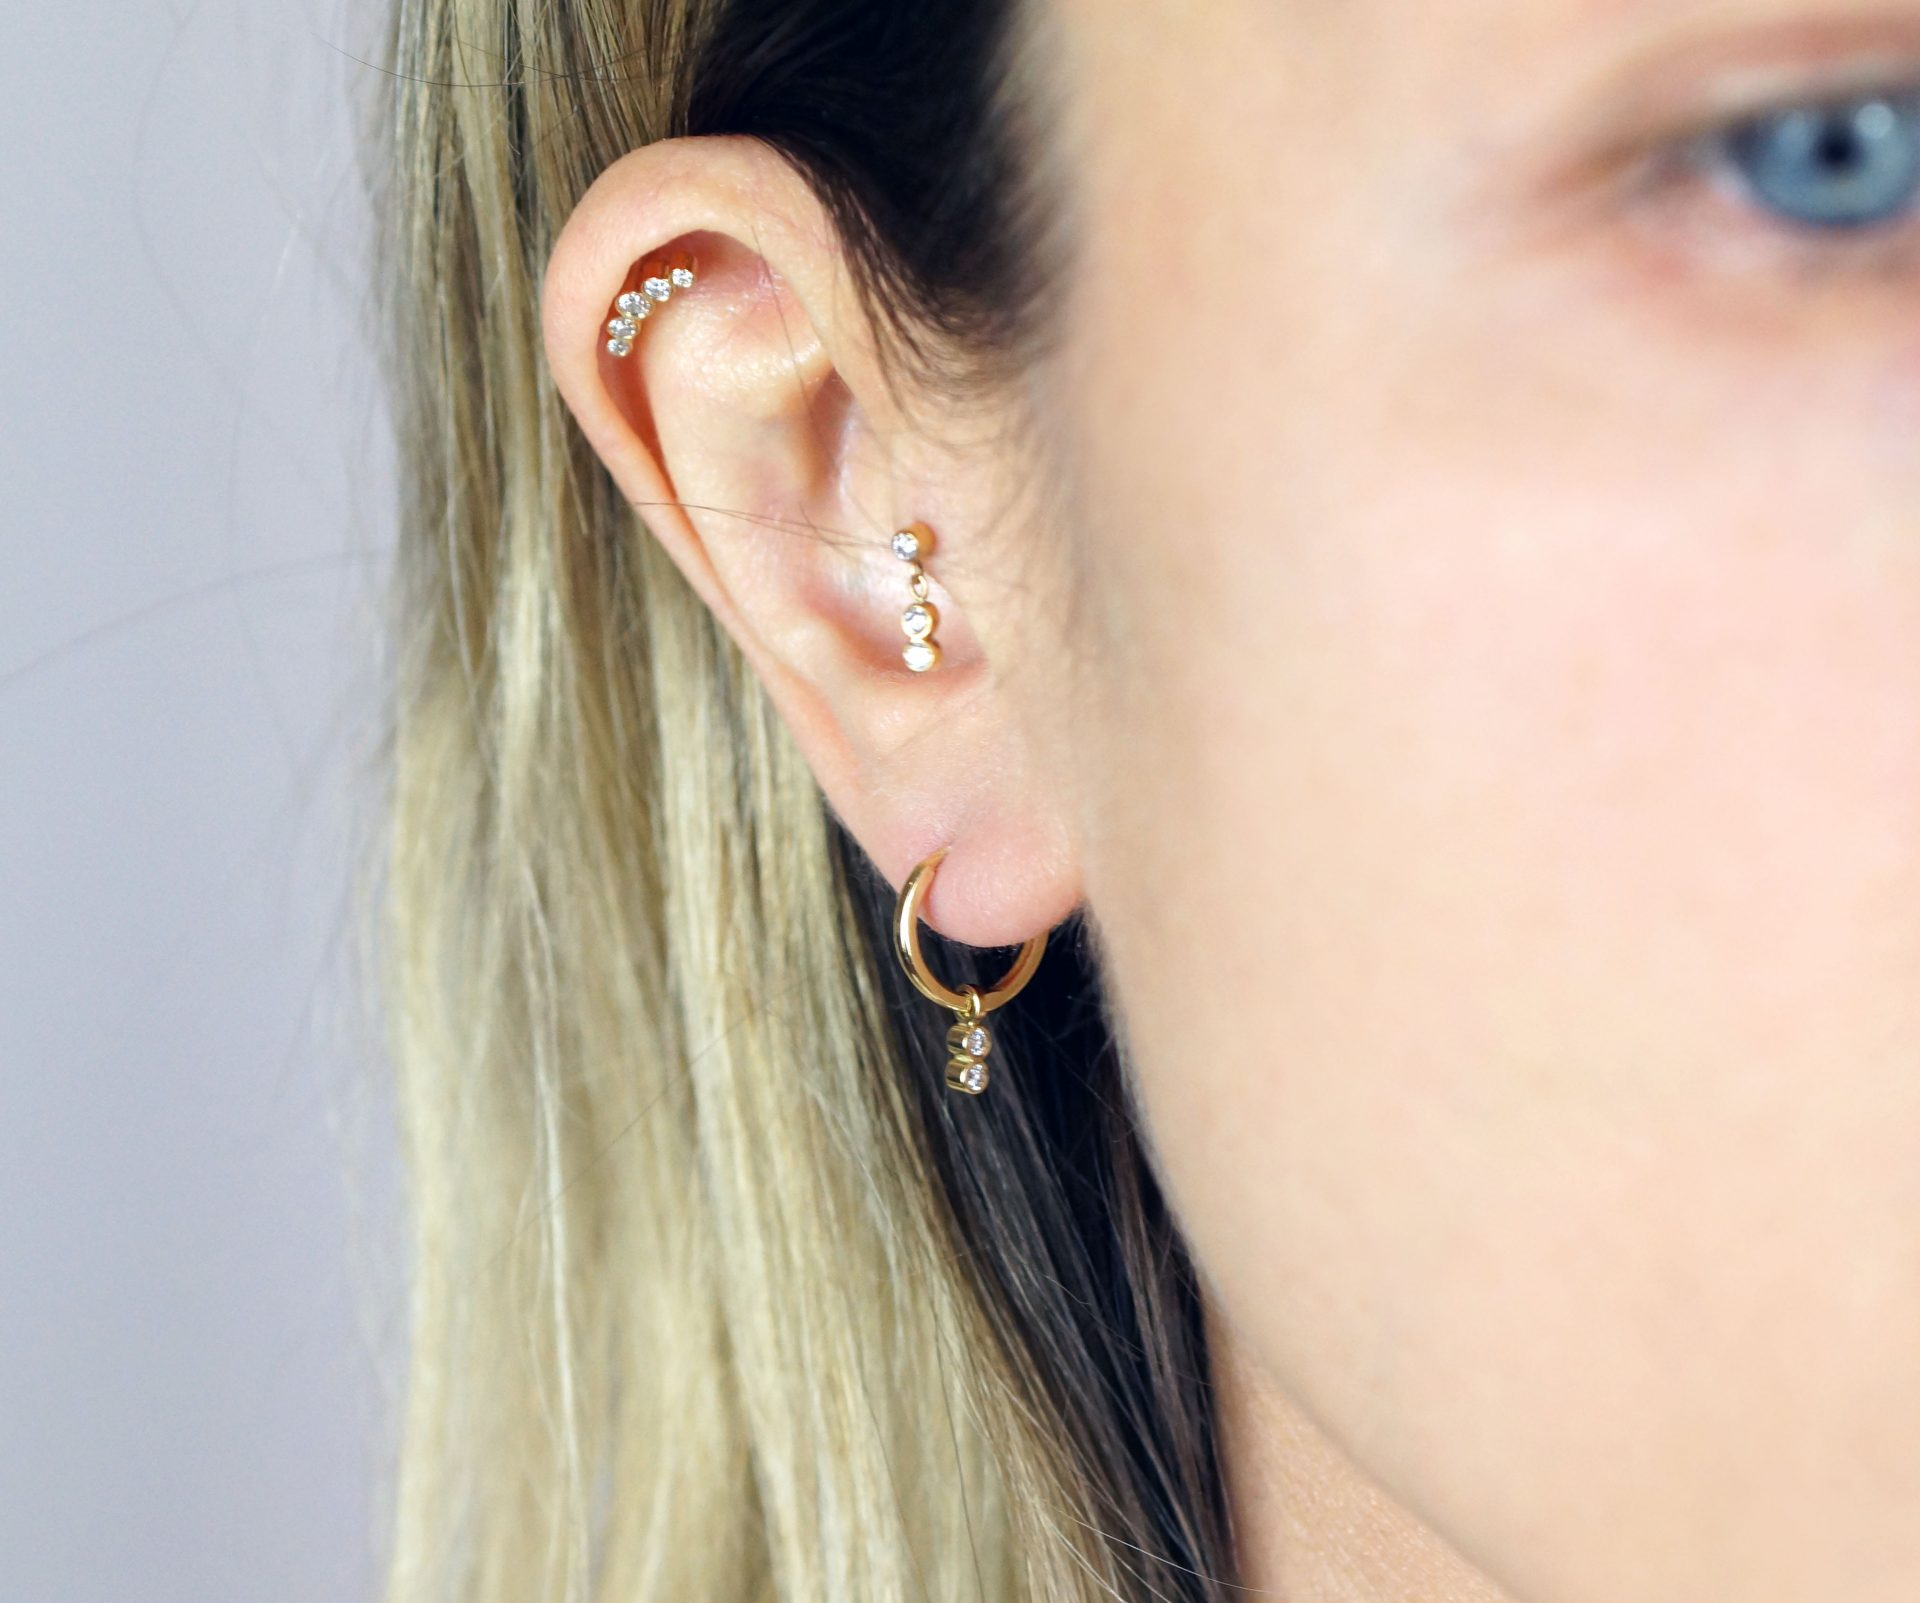 Lena Cohen leading british brand luxury piercing fine jewelry 2020 Ear Piercing Ideas Curate Your Ear